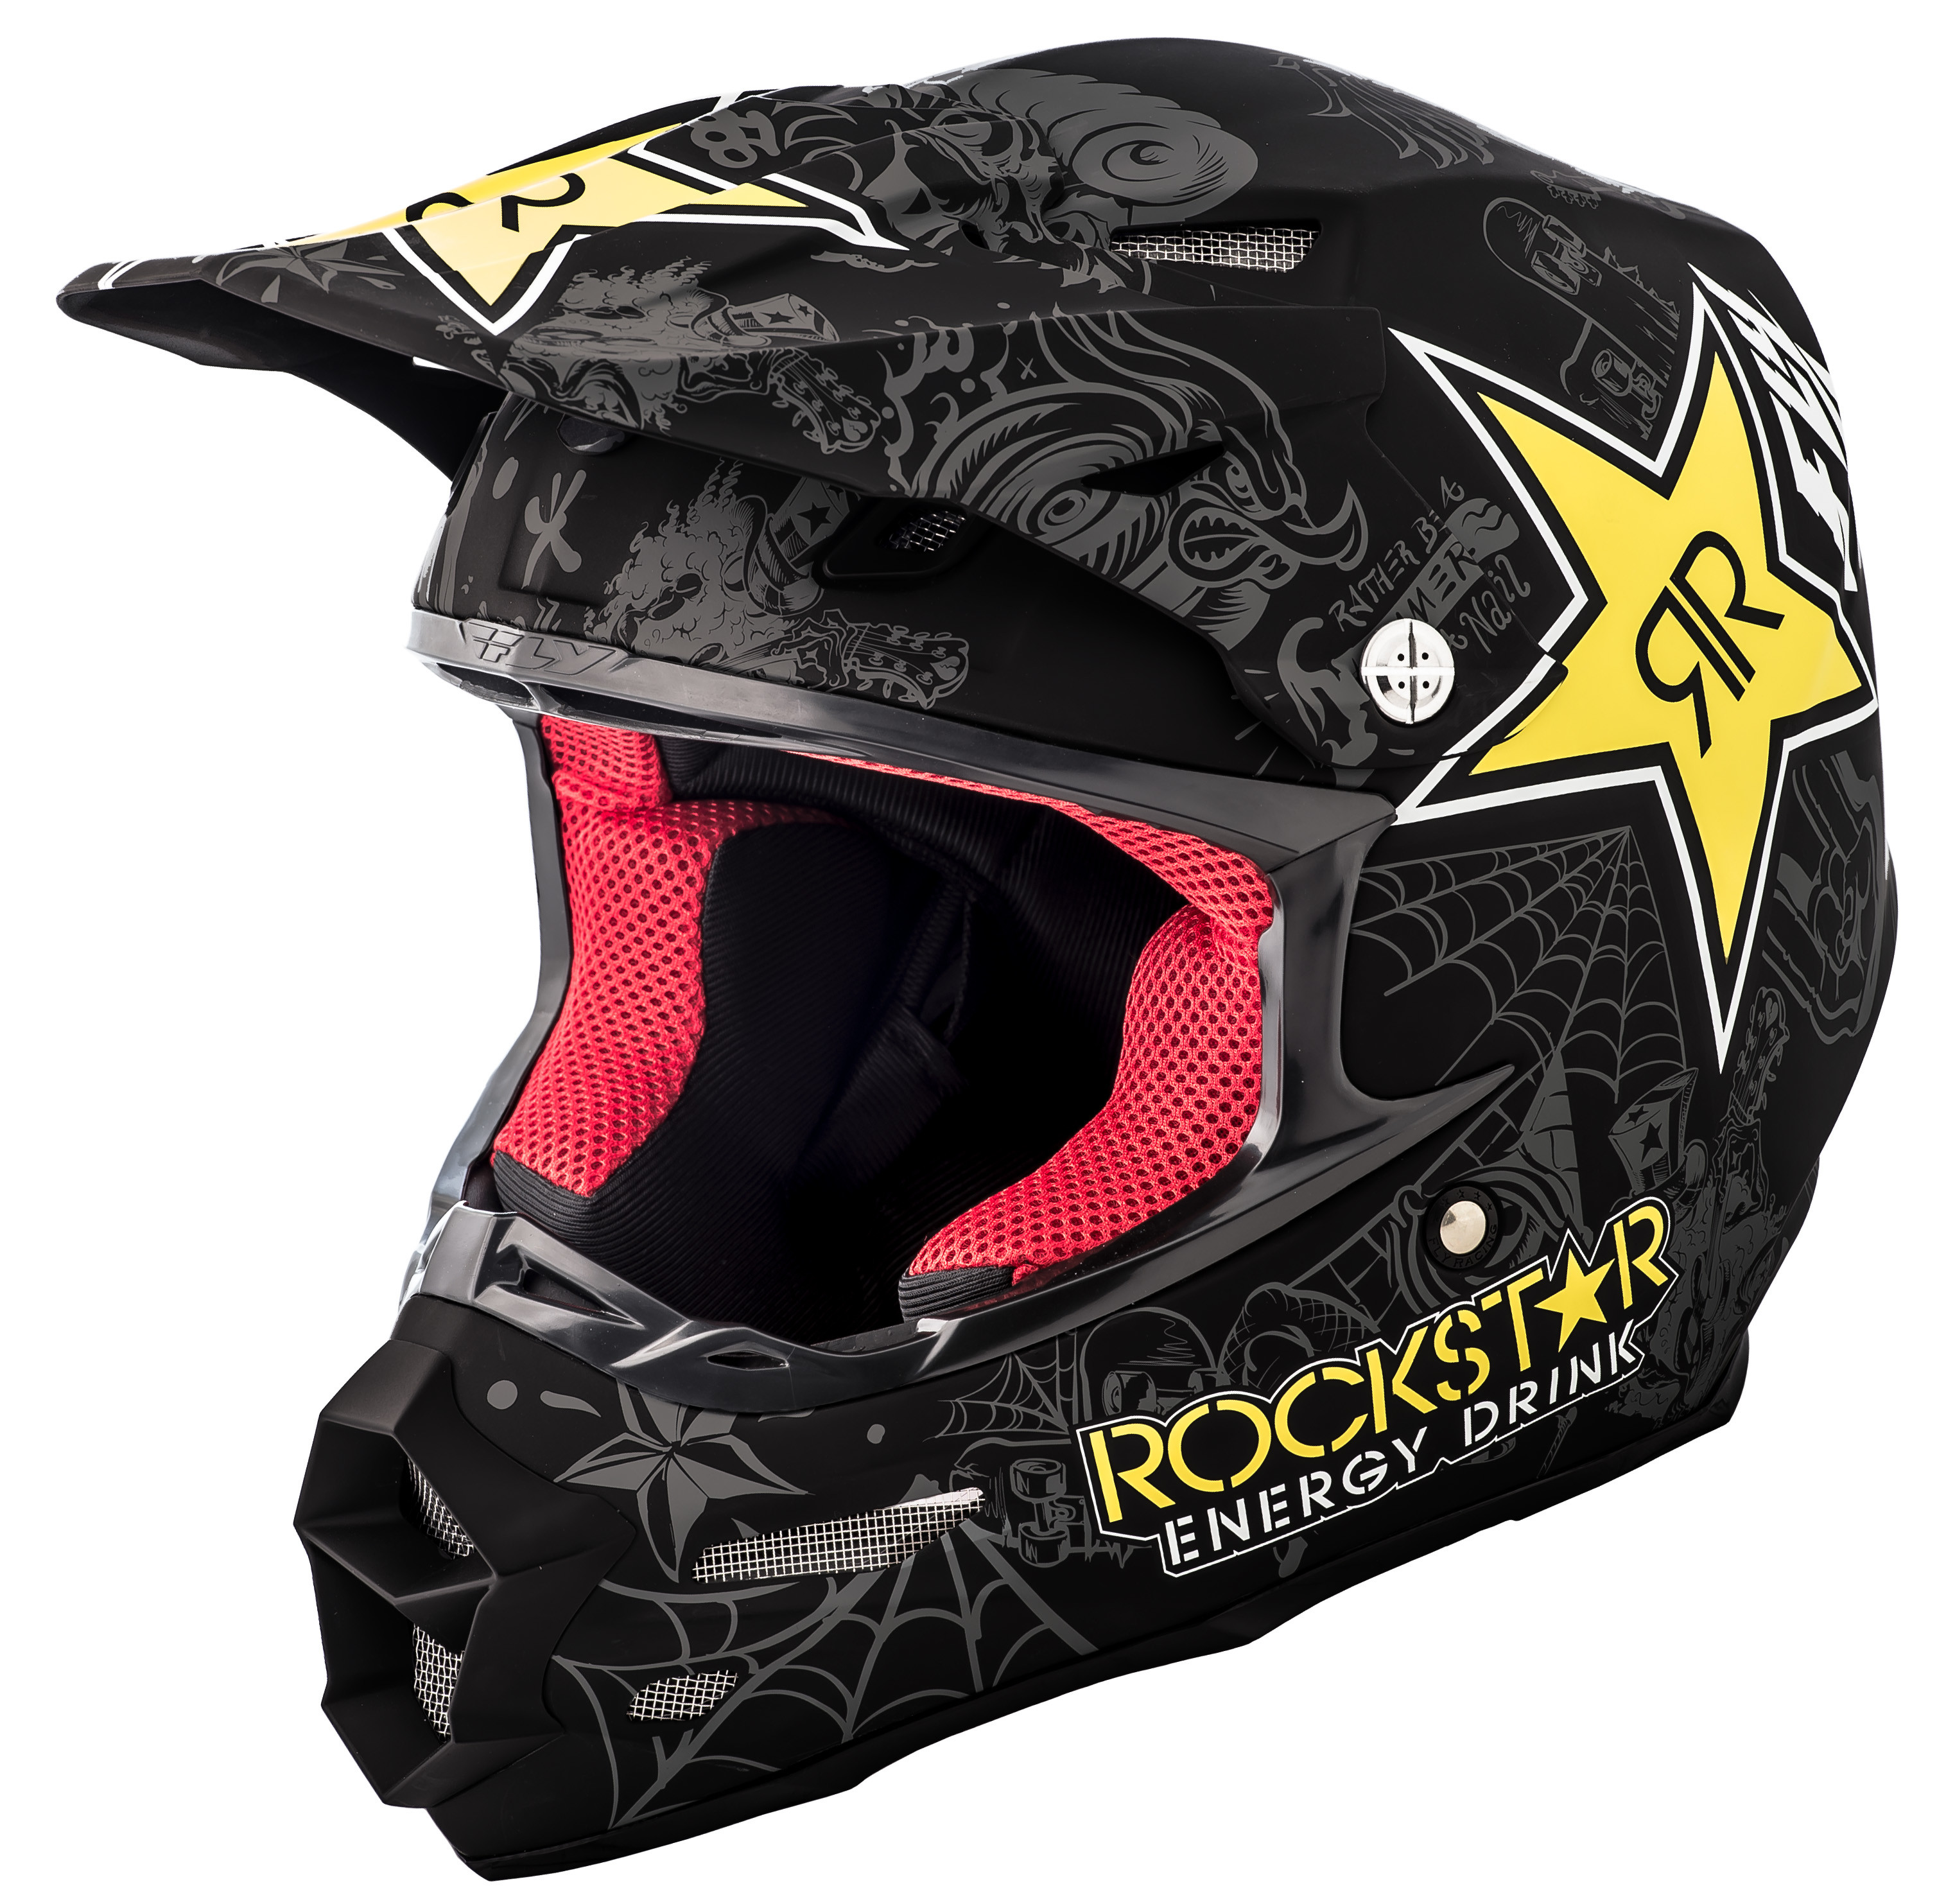 F2 Carbon Rockstar Helmet Matte Black/Charcoal/Yellow 2X